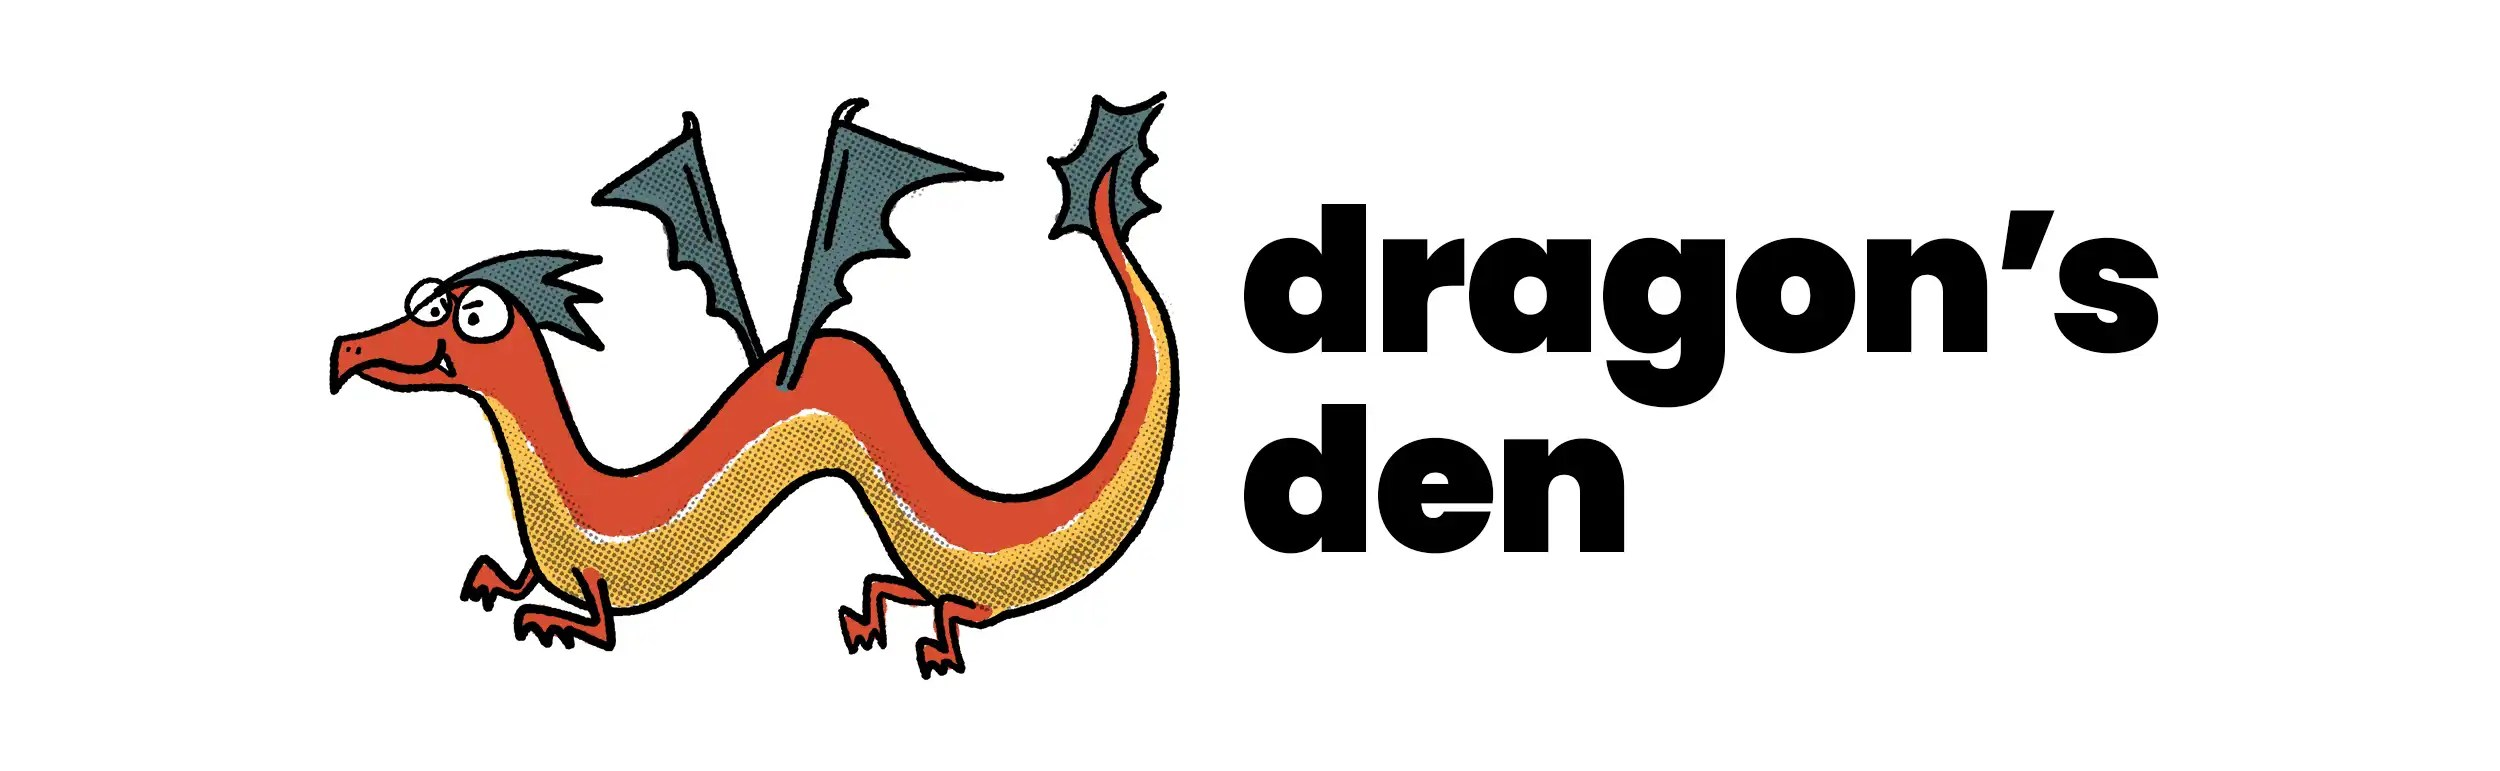 Dragon's Den Discussion banner featuring a red, yellow, and blue dragon with glasses